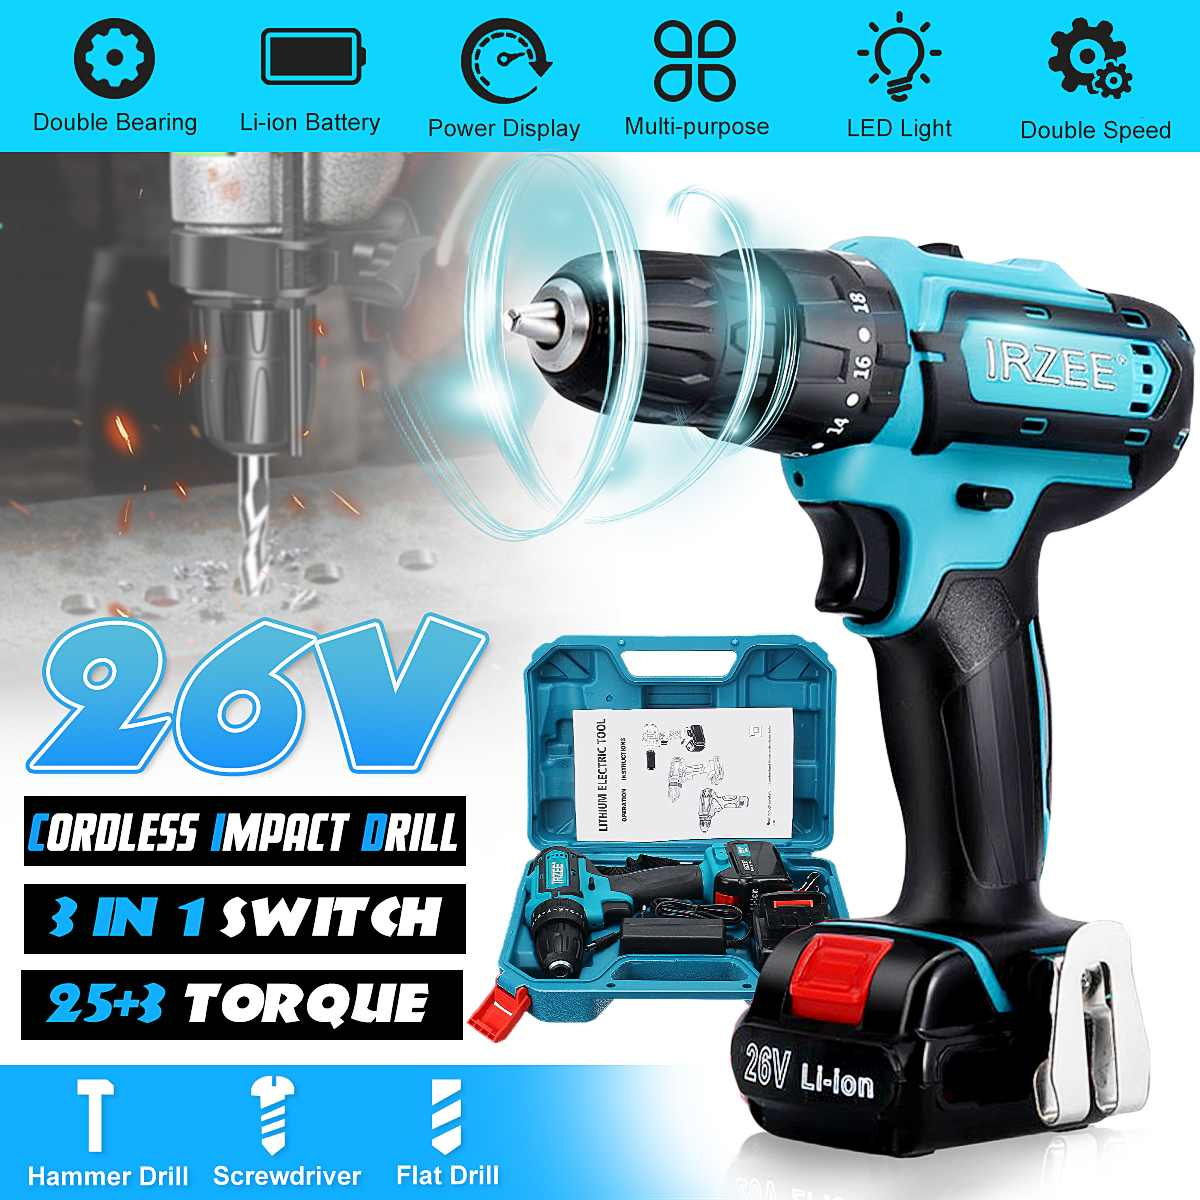 3 IN 1 26V 18+1/25+3 Electric Screwdriver Cordless Electric Impact Drill Power Driver Li-Ion Battery 2Speed DIY Home Power Tools3 IN 1 26V 18+1/25+3 Electric Screwdriver Cordless Electric Impact Drill Power Driver Li-Ion Battery 2Speed DIY Home Power Tools